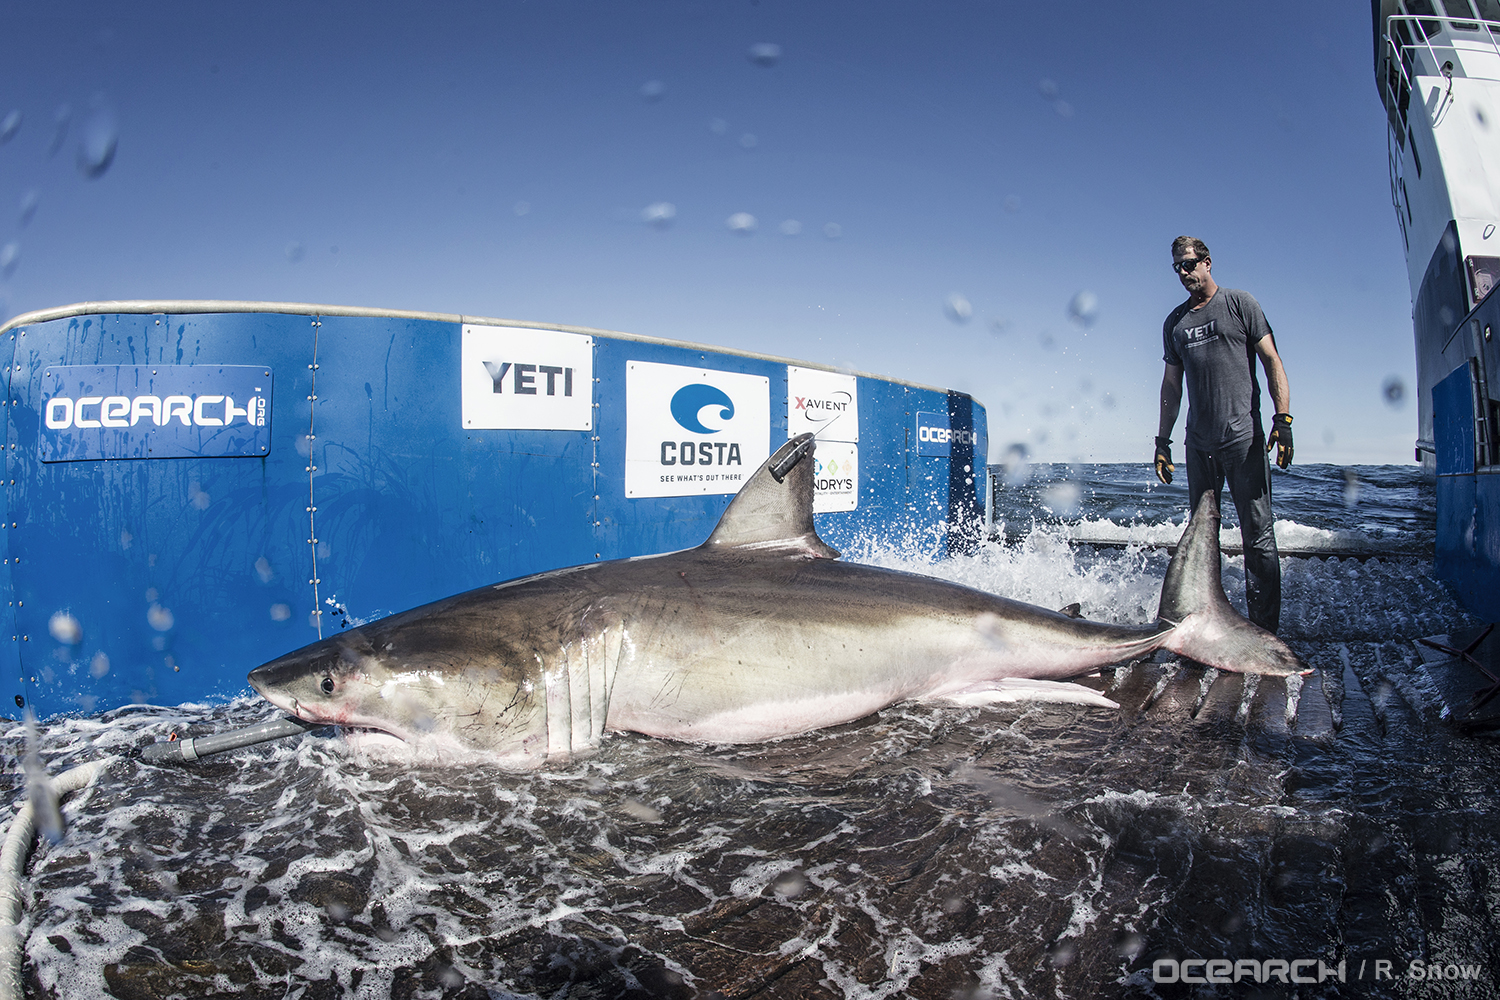 """McBride prepares to help return """"Hilton,"""" a 12.5-ft mature male white shark, to the waters off Port Royal Sound.(Photo: OCEARCH/R. Snow)"""